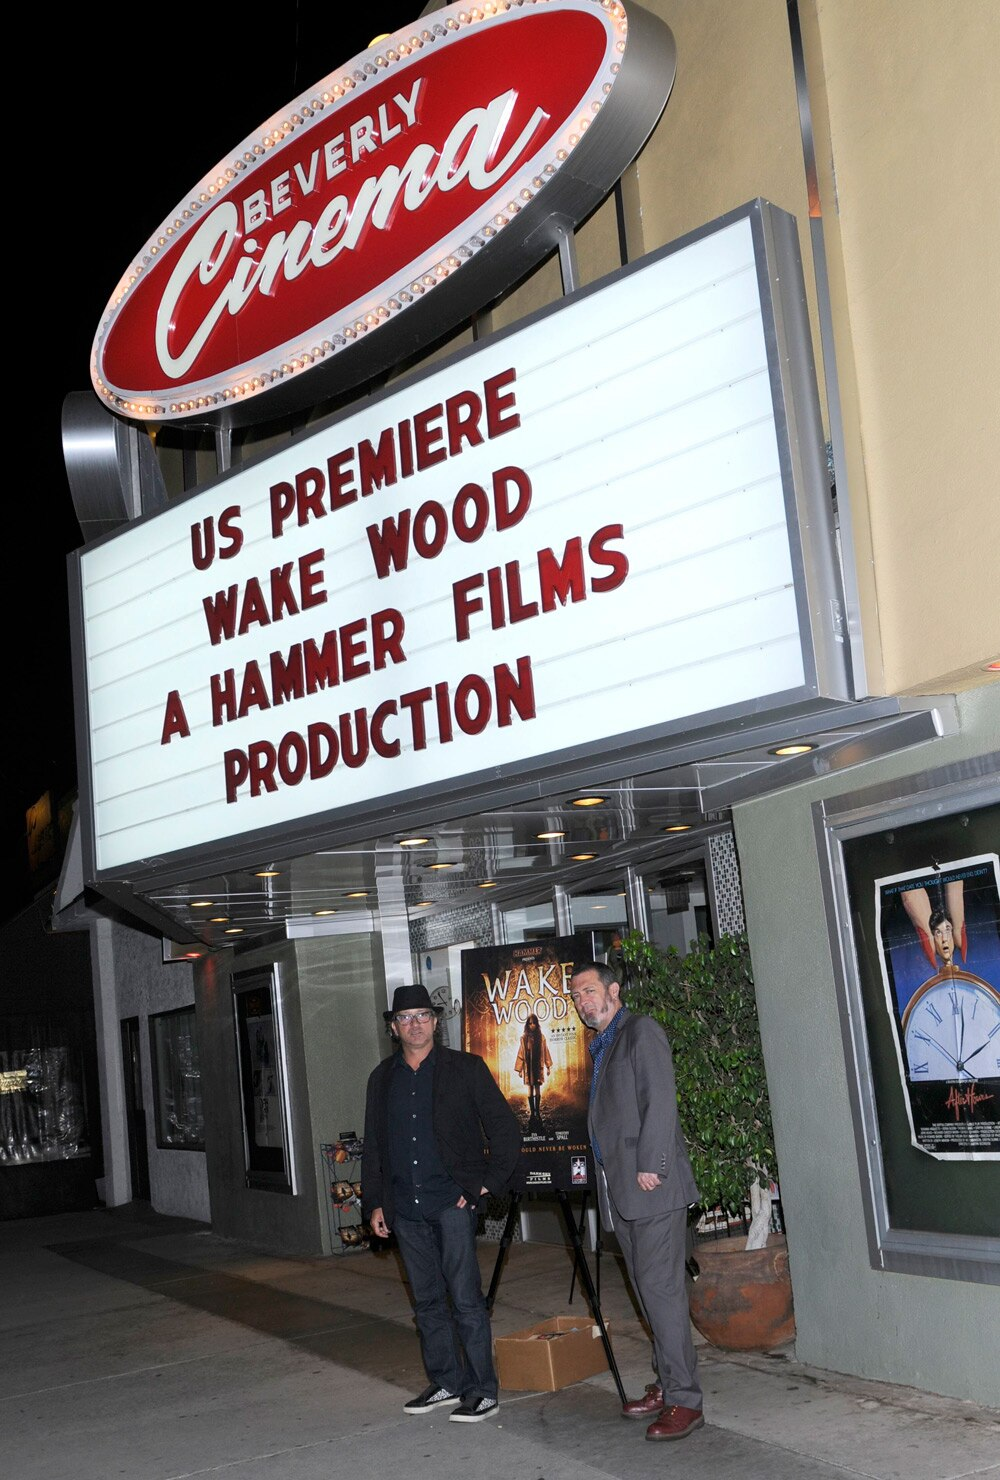 Event Imagery: The Los Angeles Premiere of Wake Wood